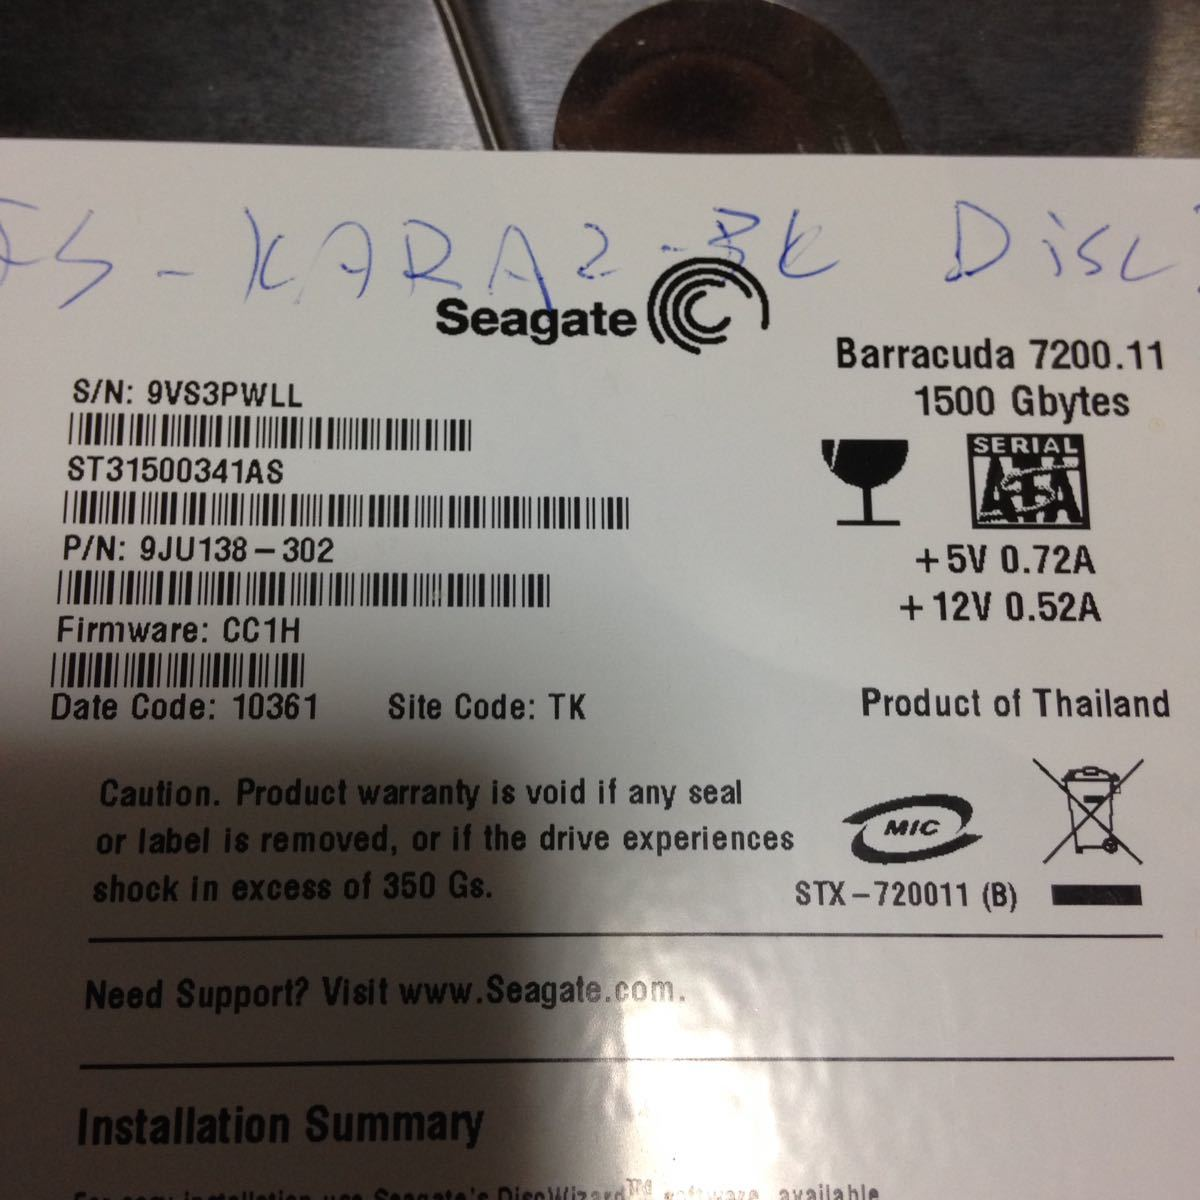 【ジャンク扱い】[HDD] Seagate Barracuda 7200.11 1500GB ST31500341AS 9JU138-302 1.5TB_画像3